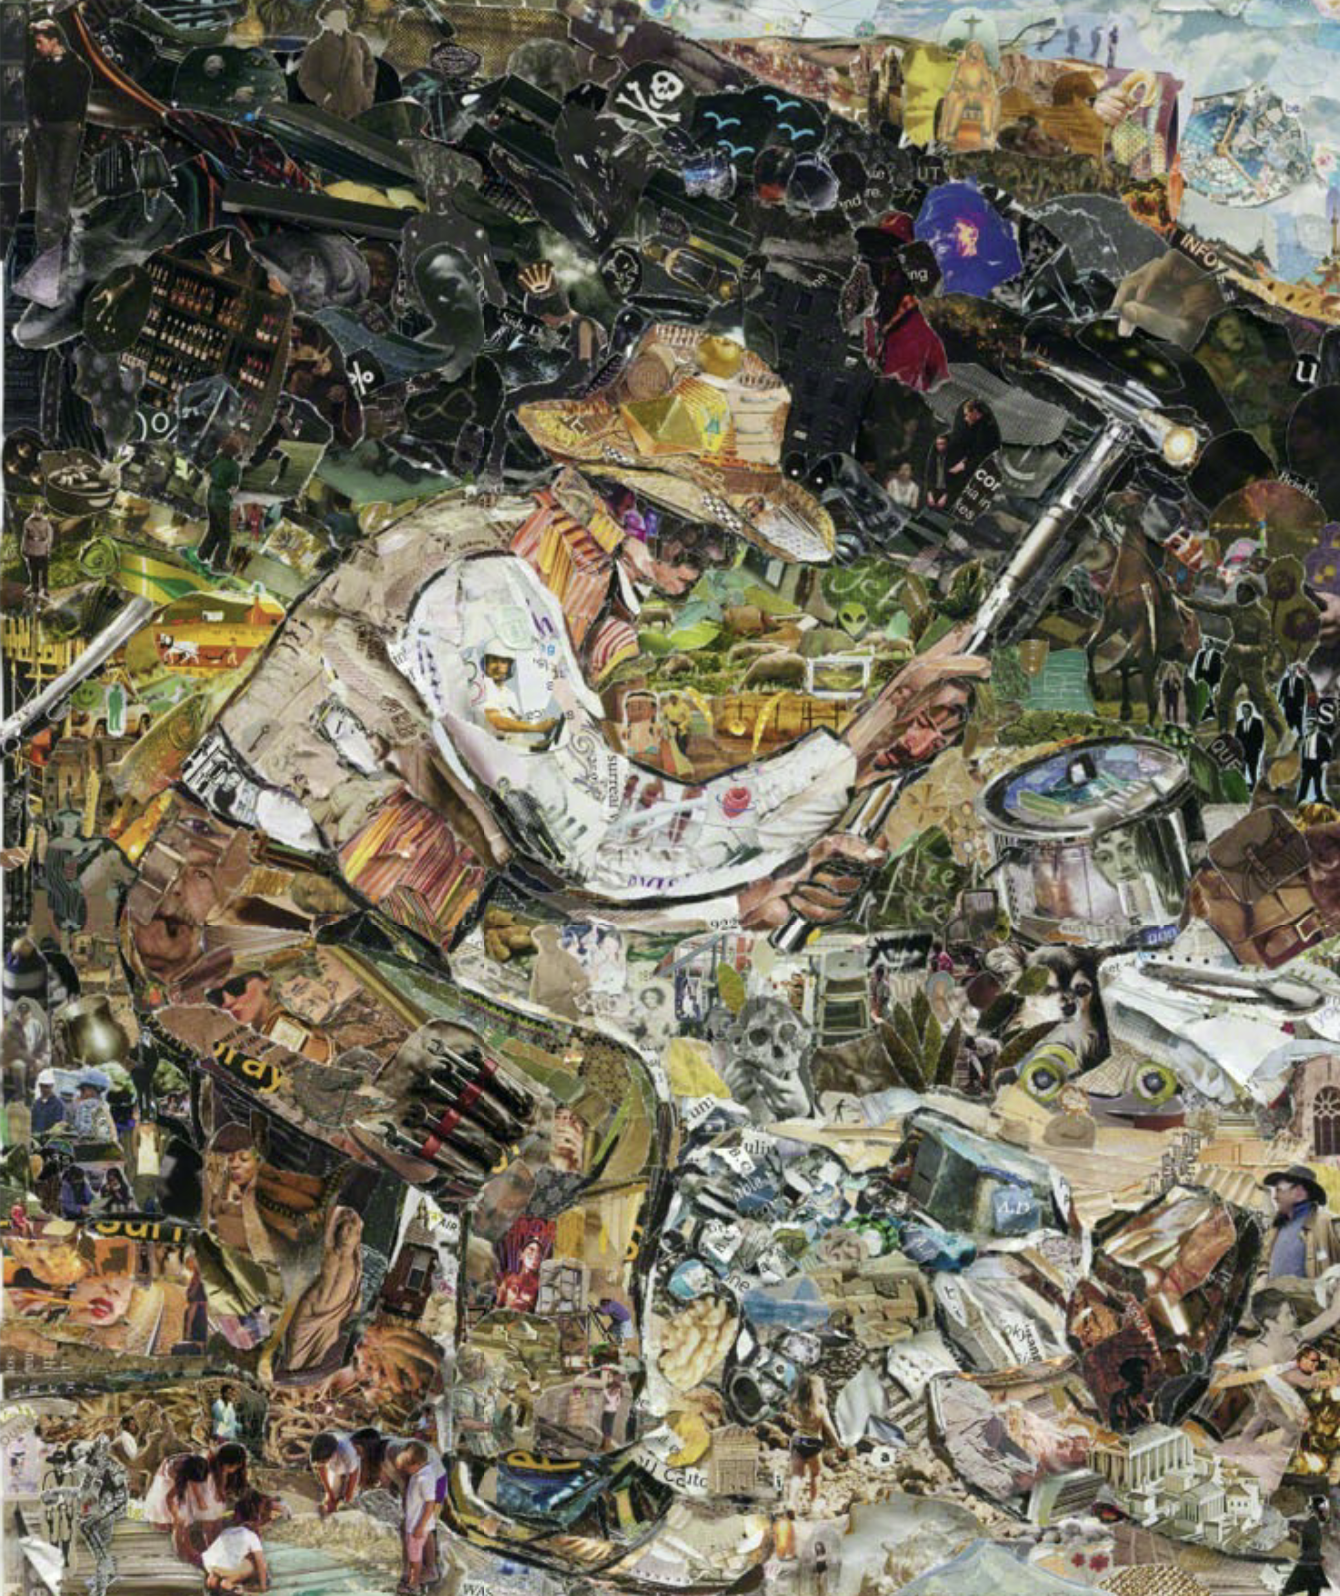 Brazilian artist Vik Muniz uses recycled materials to recreate great art such as The Stone Breaker,